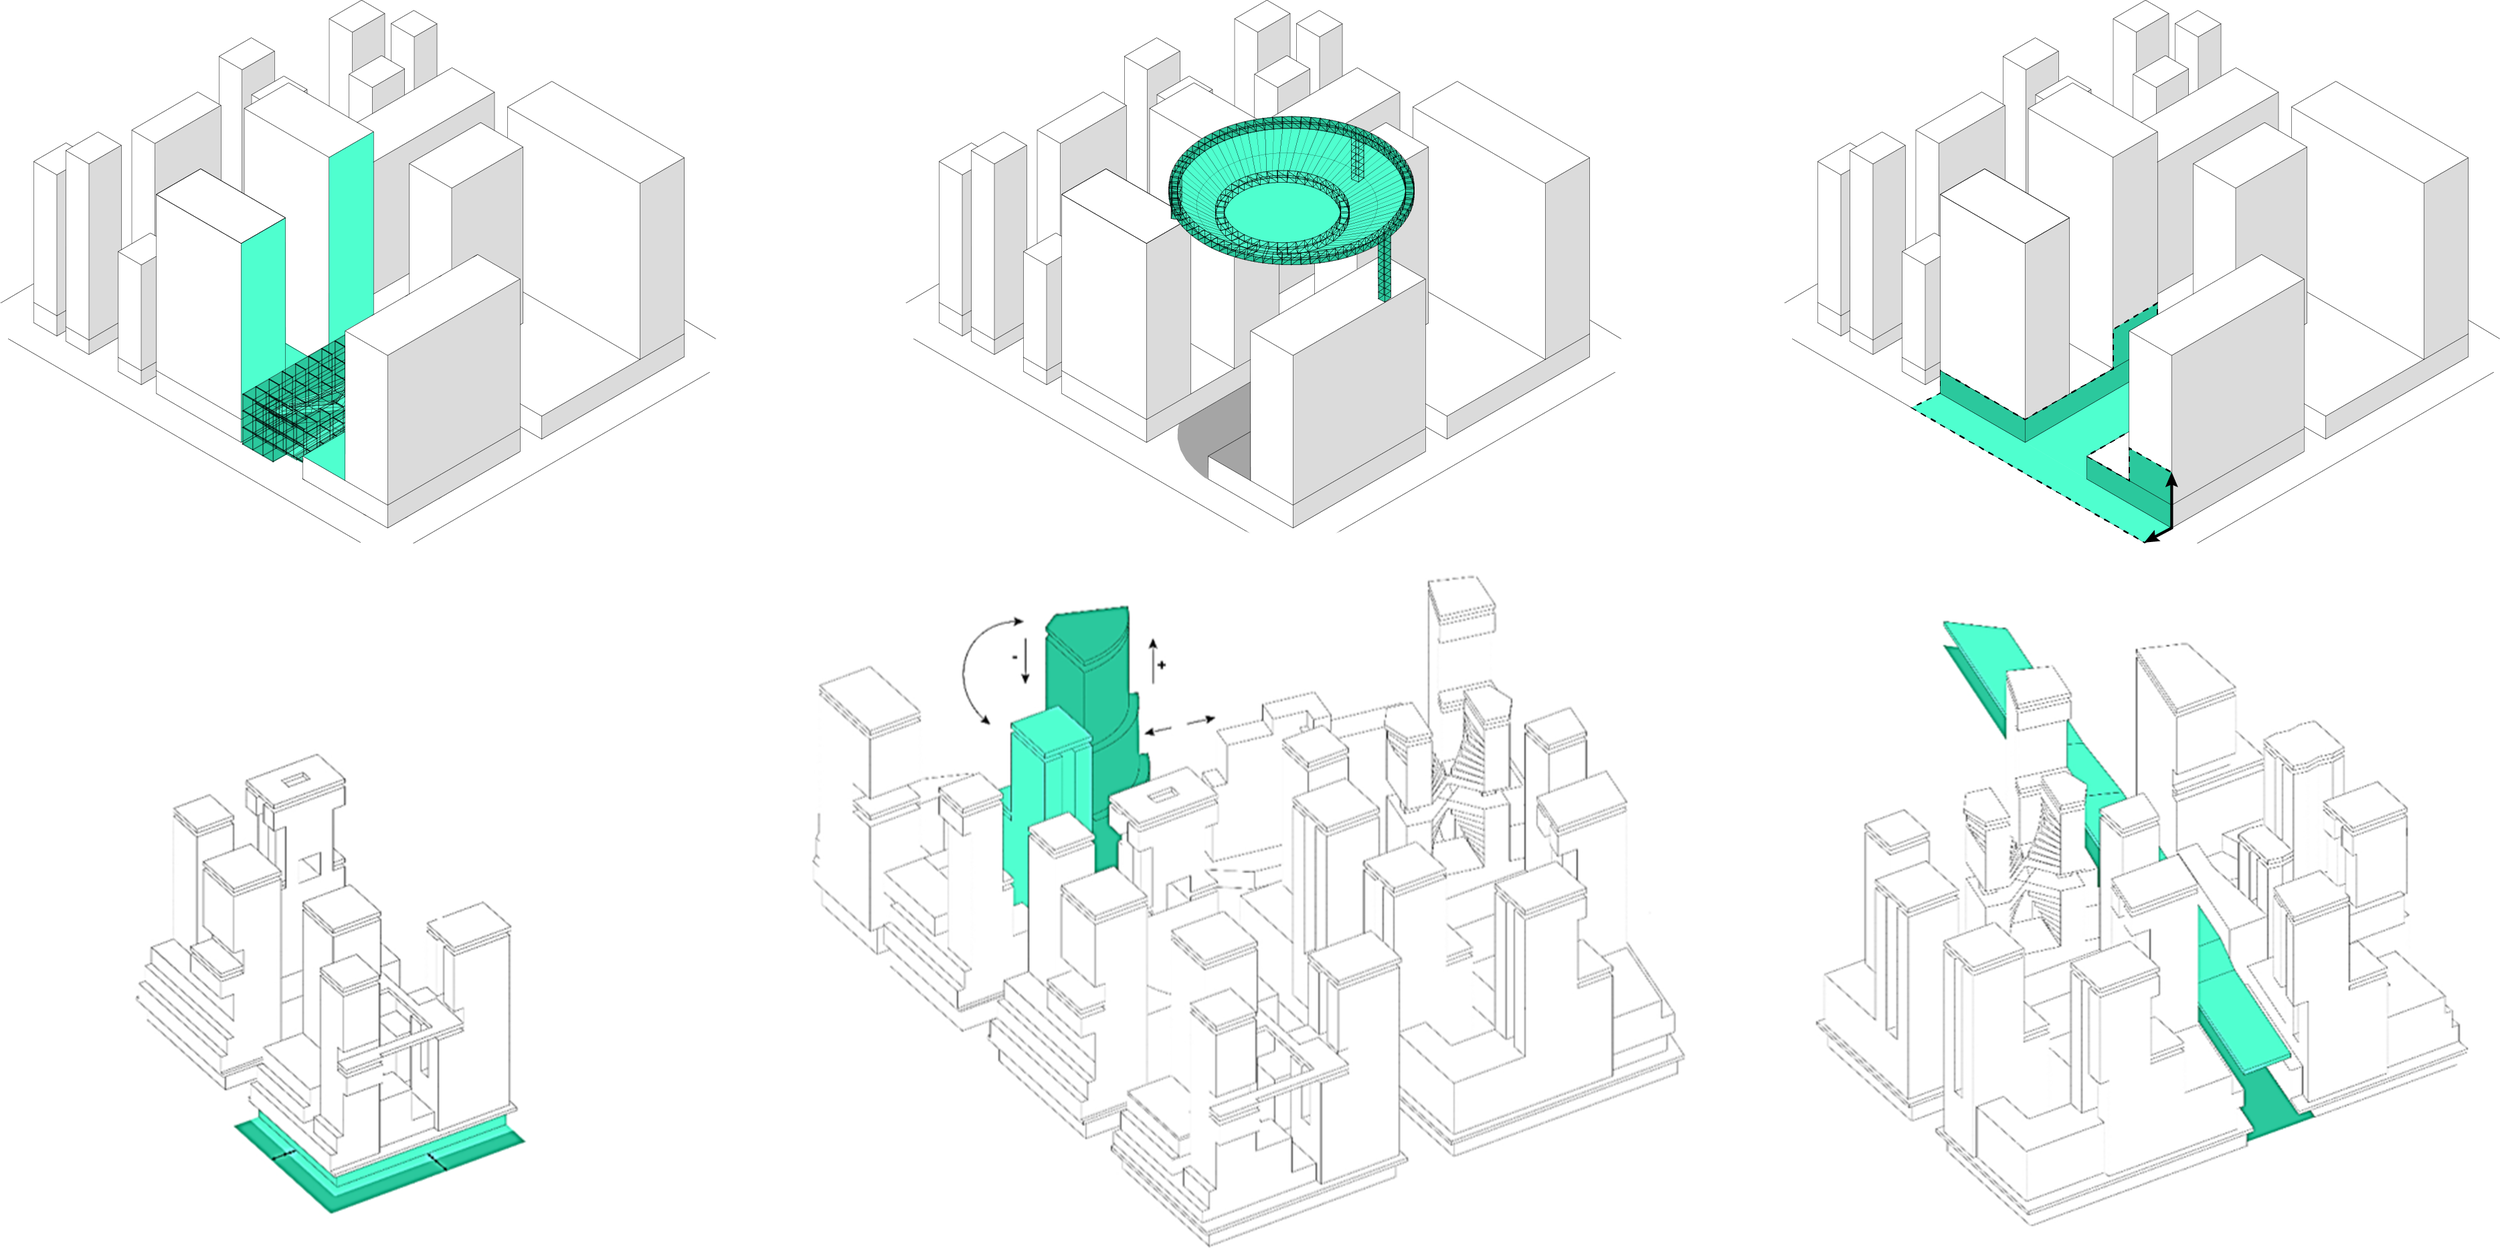 Source: Lea Reufenacht  Top (left to right): Increase setbacks on ground floor from 4 to 9 meters; Re-arrange and re-orientate punctual buildings blocks; Adjust height, location and form of C-walk. Bottom (left to right): Increase number of trees (33% and 60%); Install large-scale urban canopy/pergola to increase shading; Retrofit pavement and façade materials with green facades and retro-reflective materials at different heights.